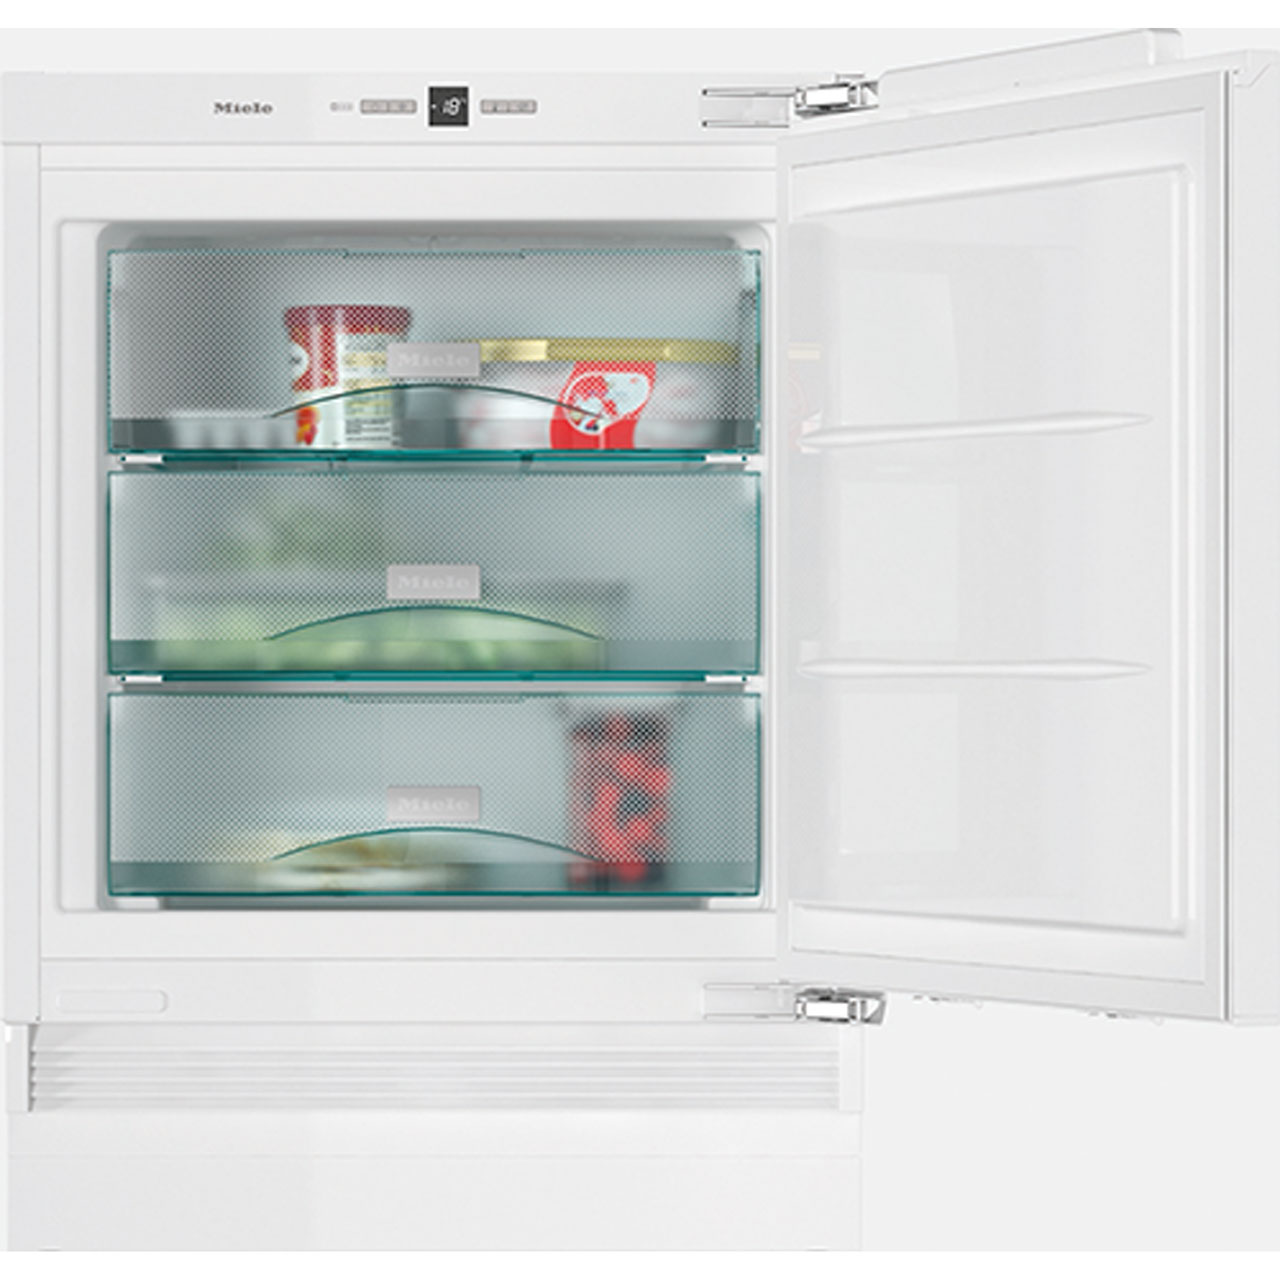 Miele F31202Ui Integrated Under Counter Freezer review